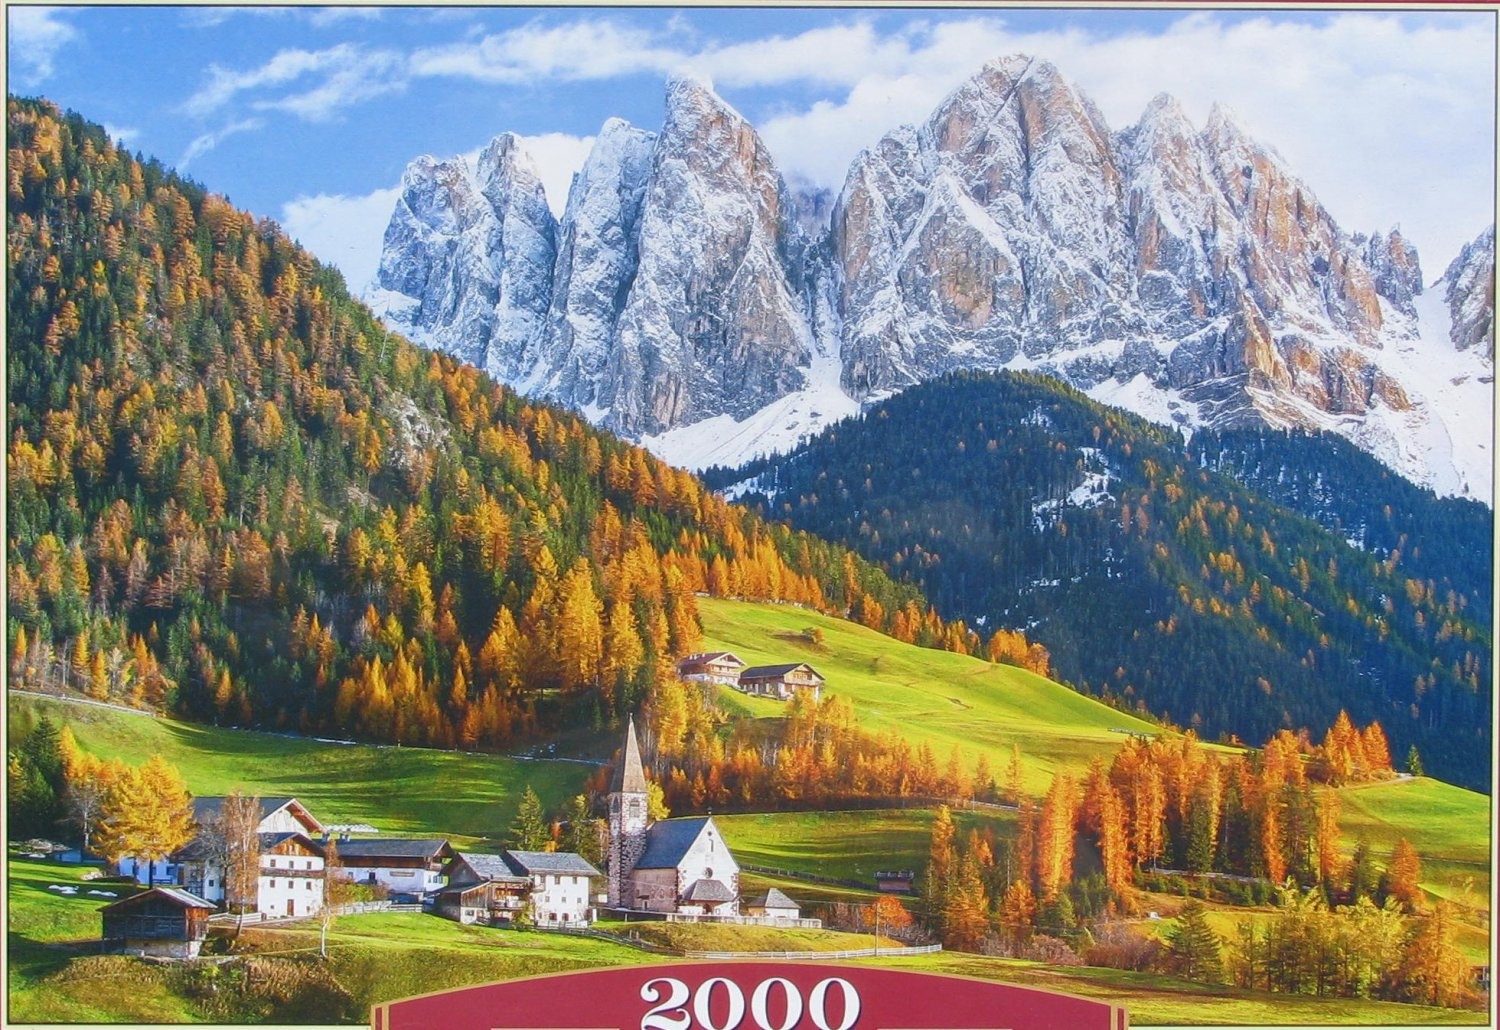 Castorland CHURCH OF ST MAGDALENA DOLOMITES 2000 pc Jigsaw Puzzle